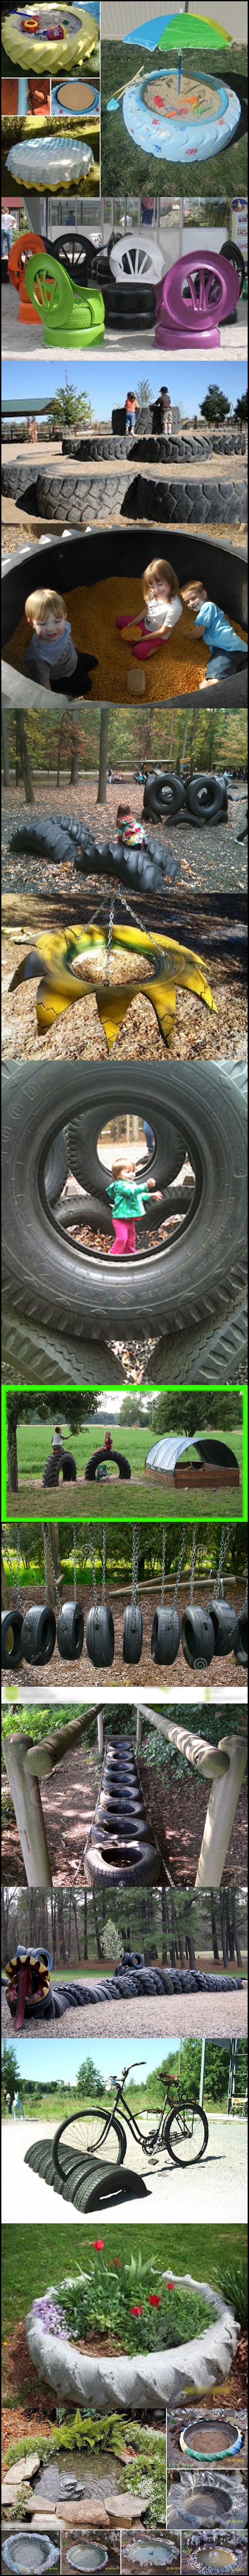 tire ideas